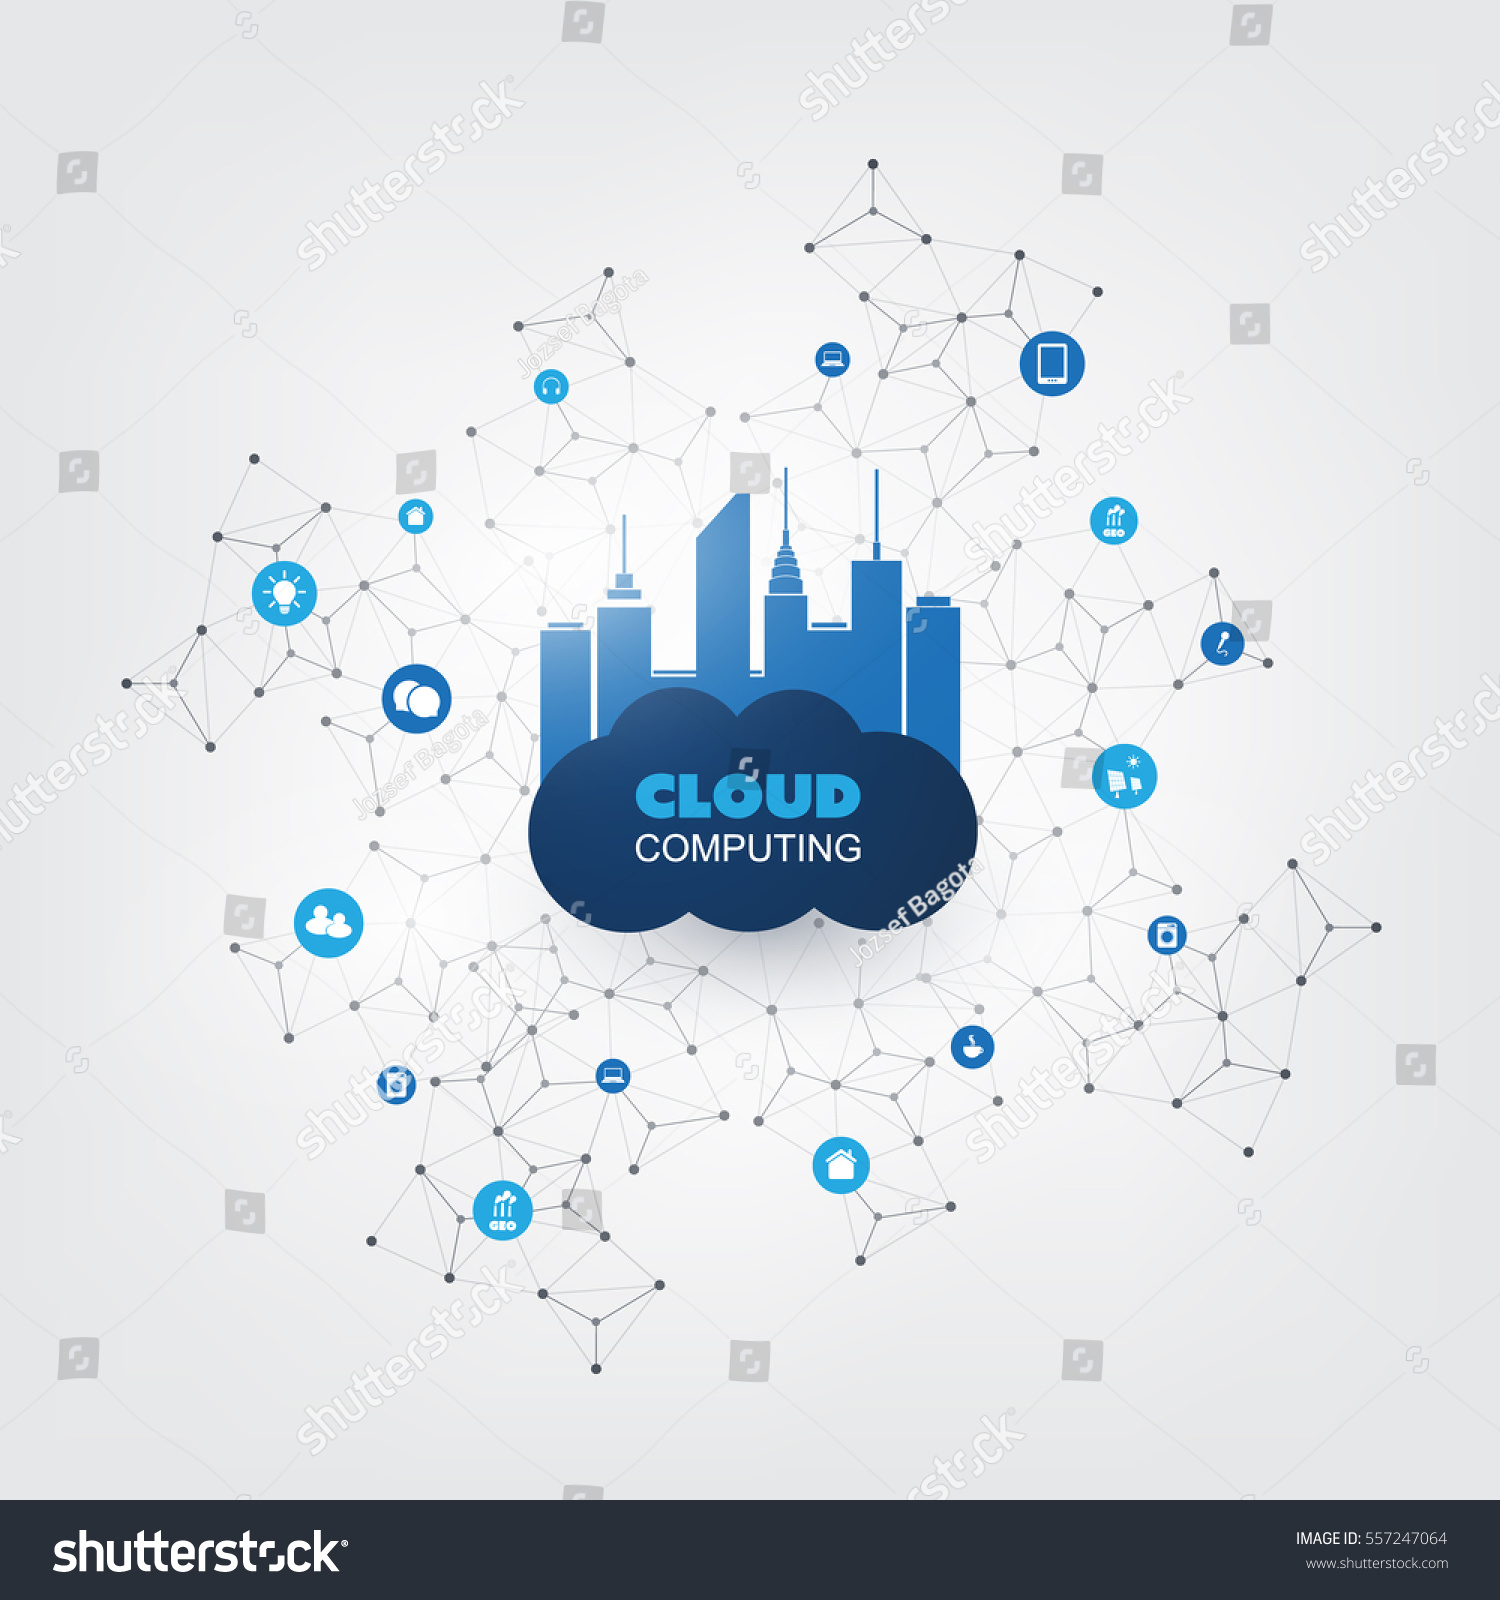 Networking Cloud Computing: Cloud Computing Design Concept Icons Digital Stock Vector